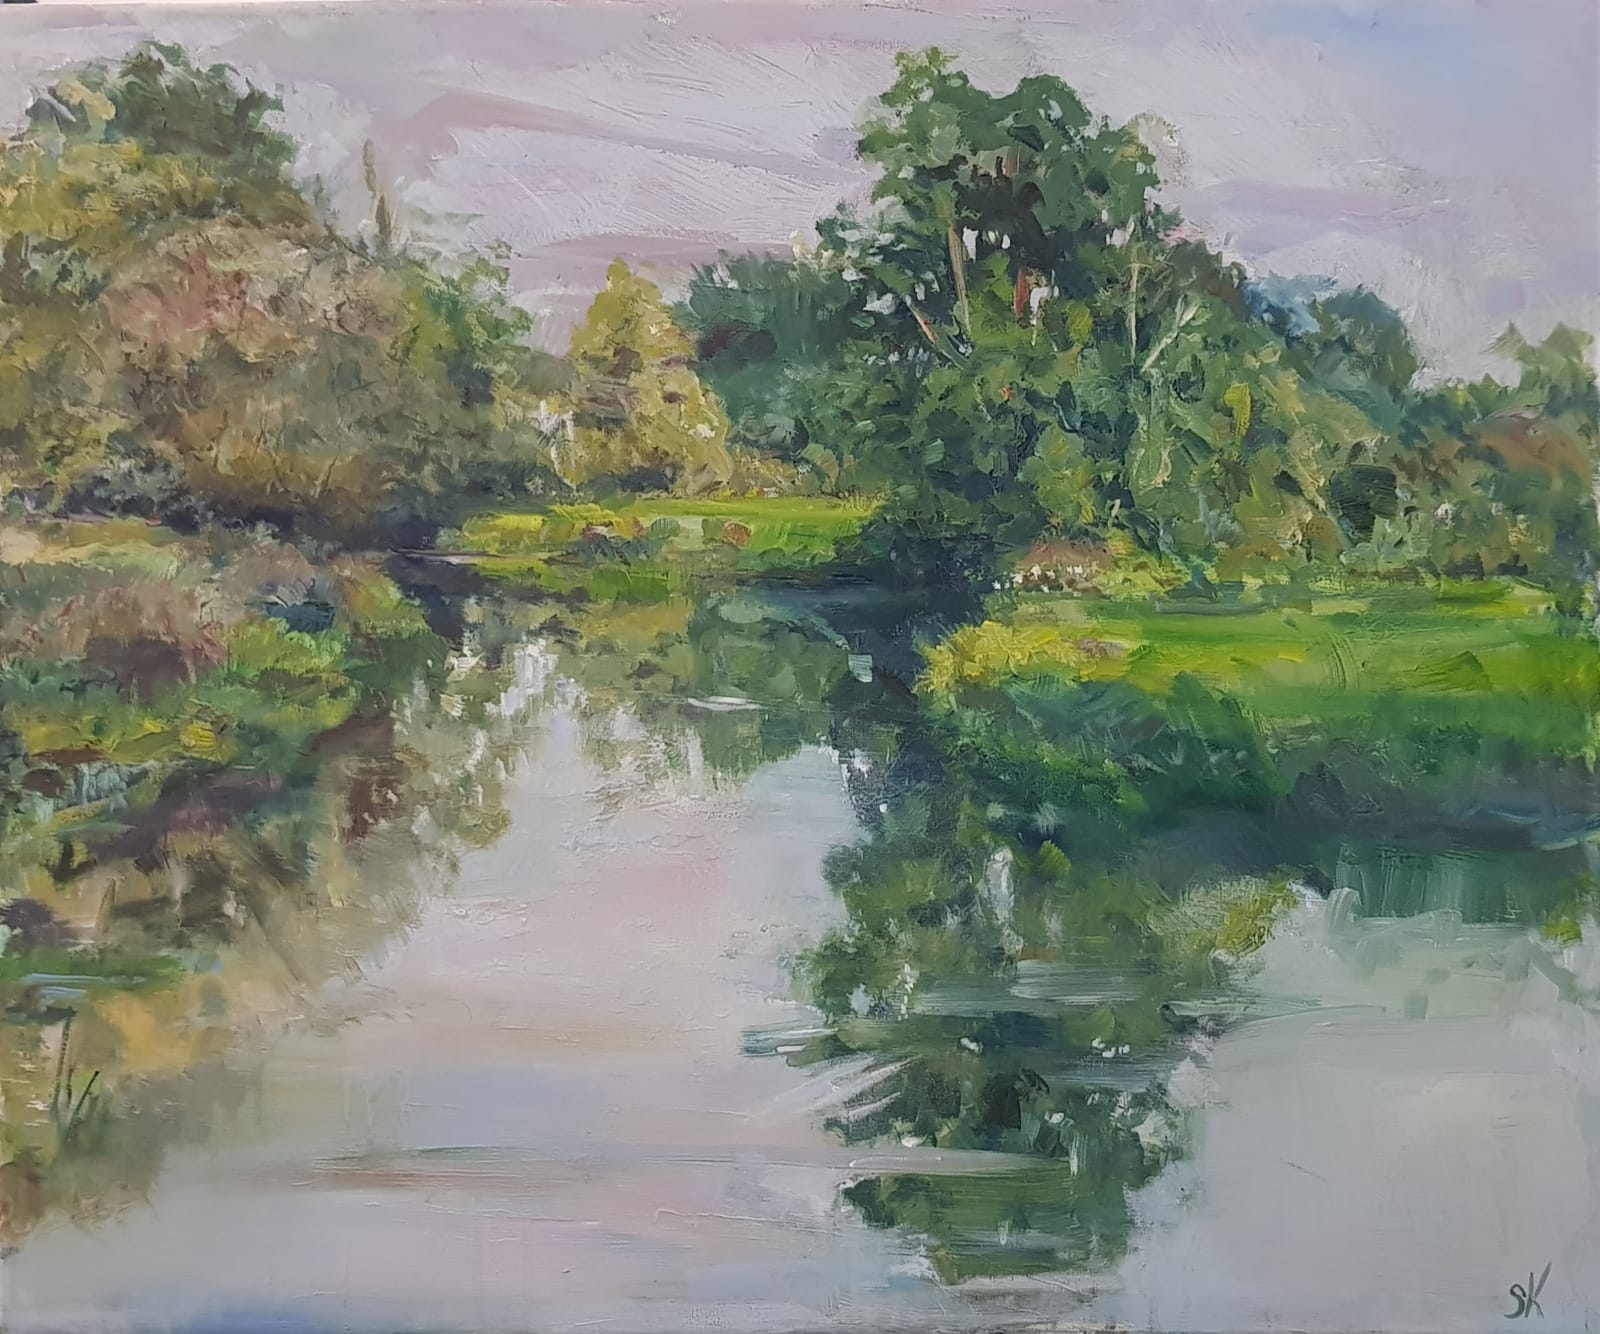 Stephen Kinder, RIVER WEY EARLY AUTUMN